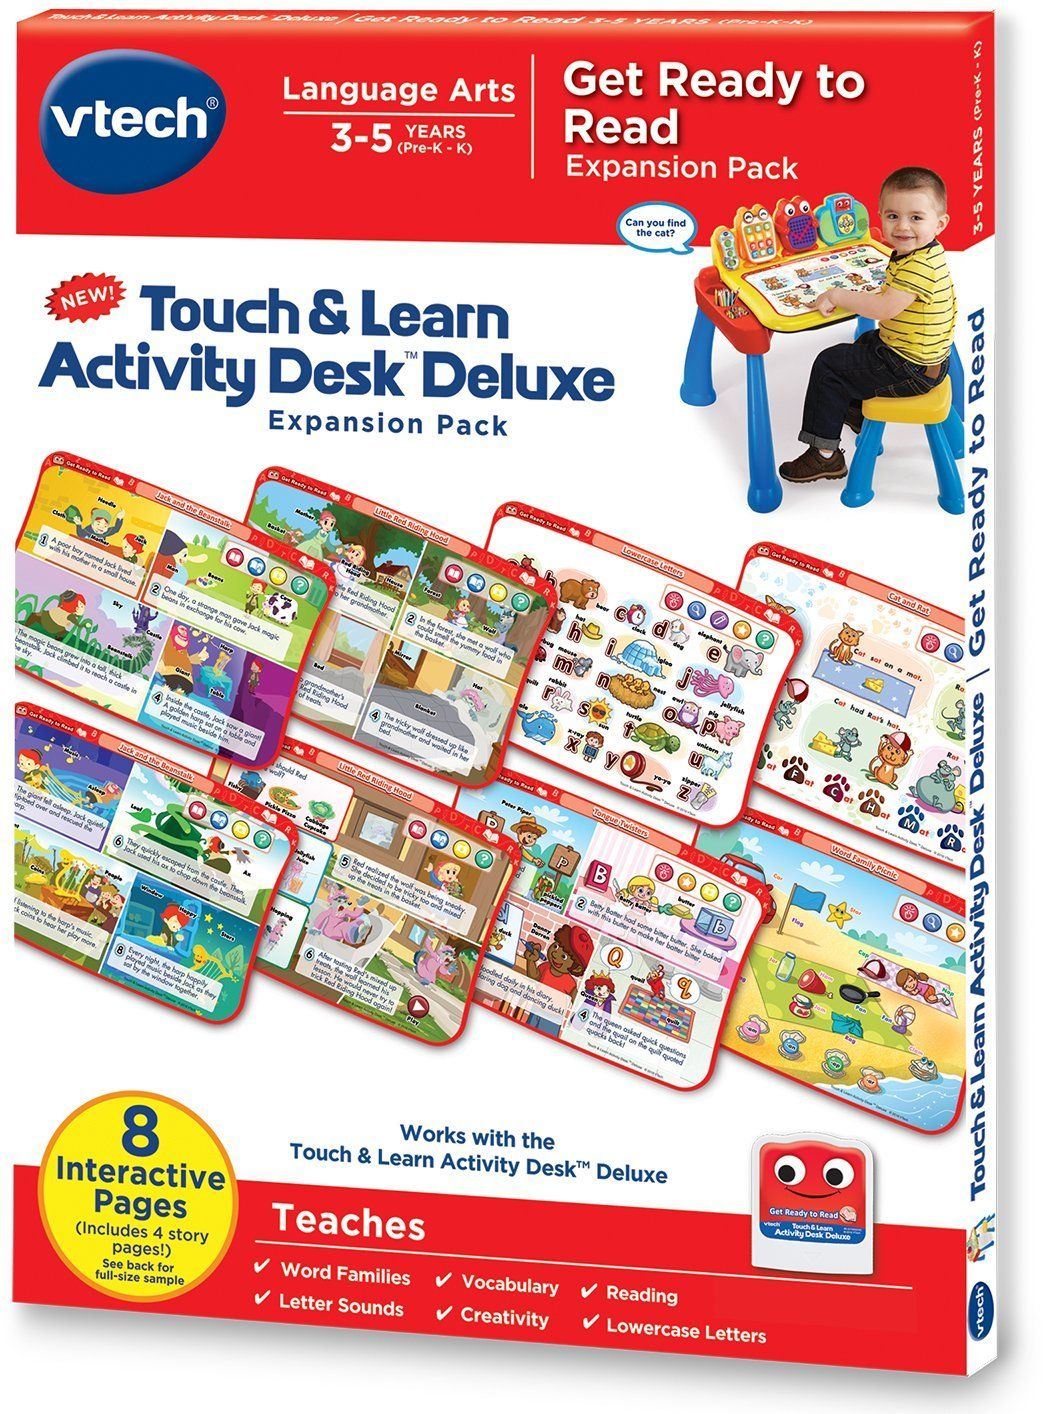 BUY VTech Touch and Learn Activity Desk Deluxe Get Ready